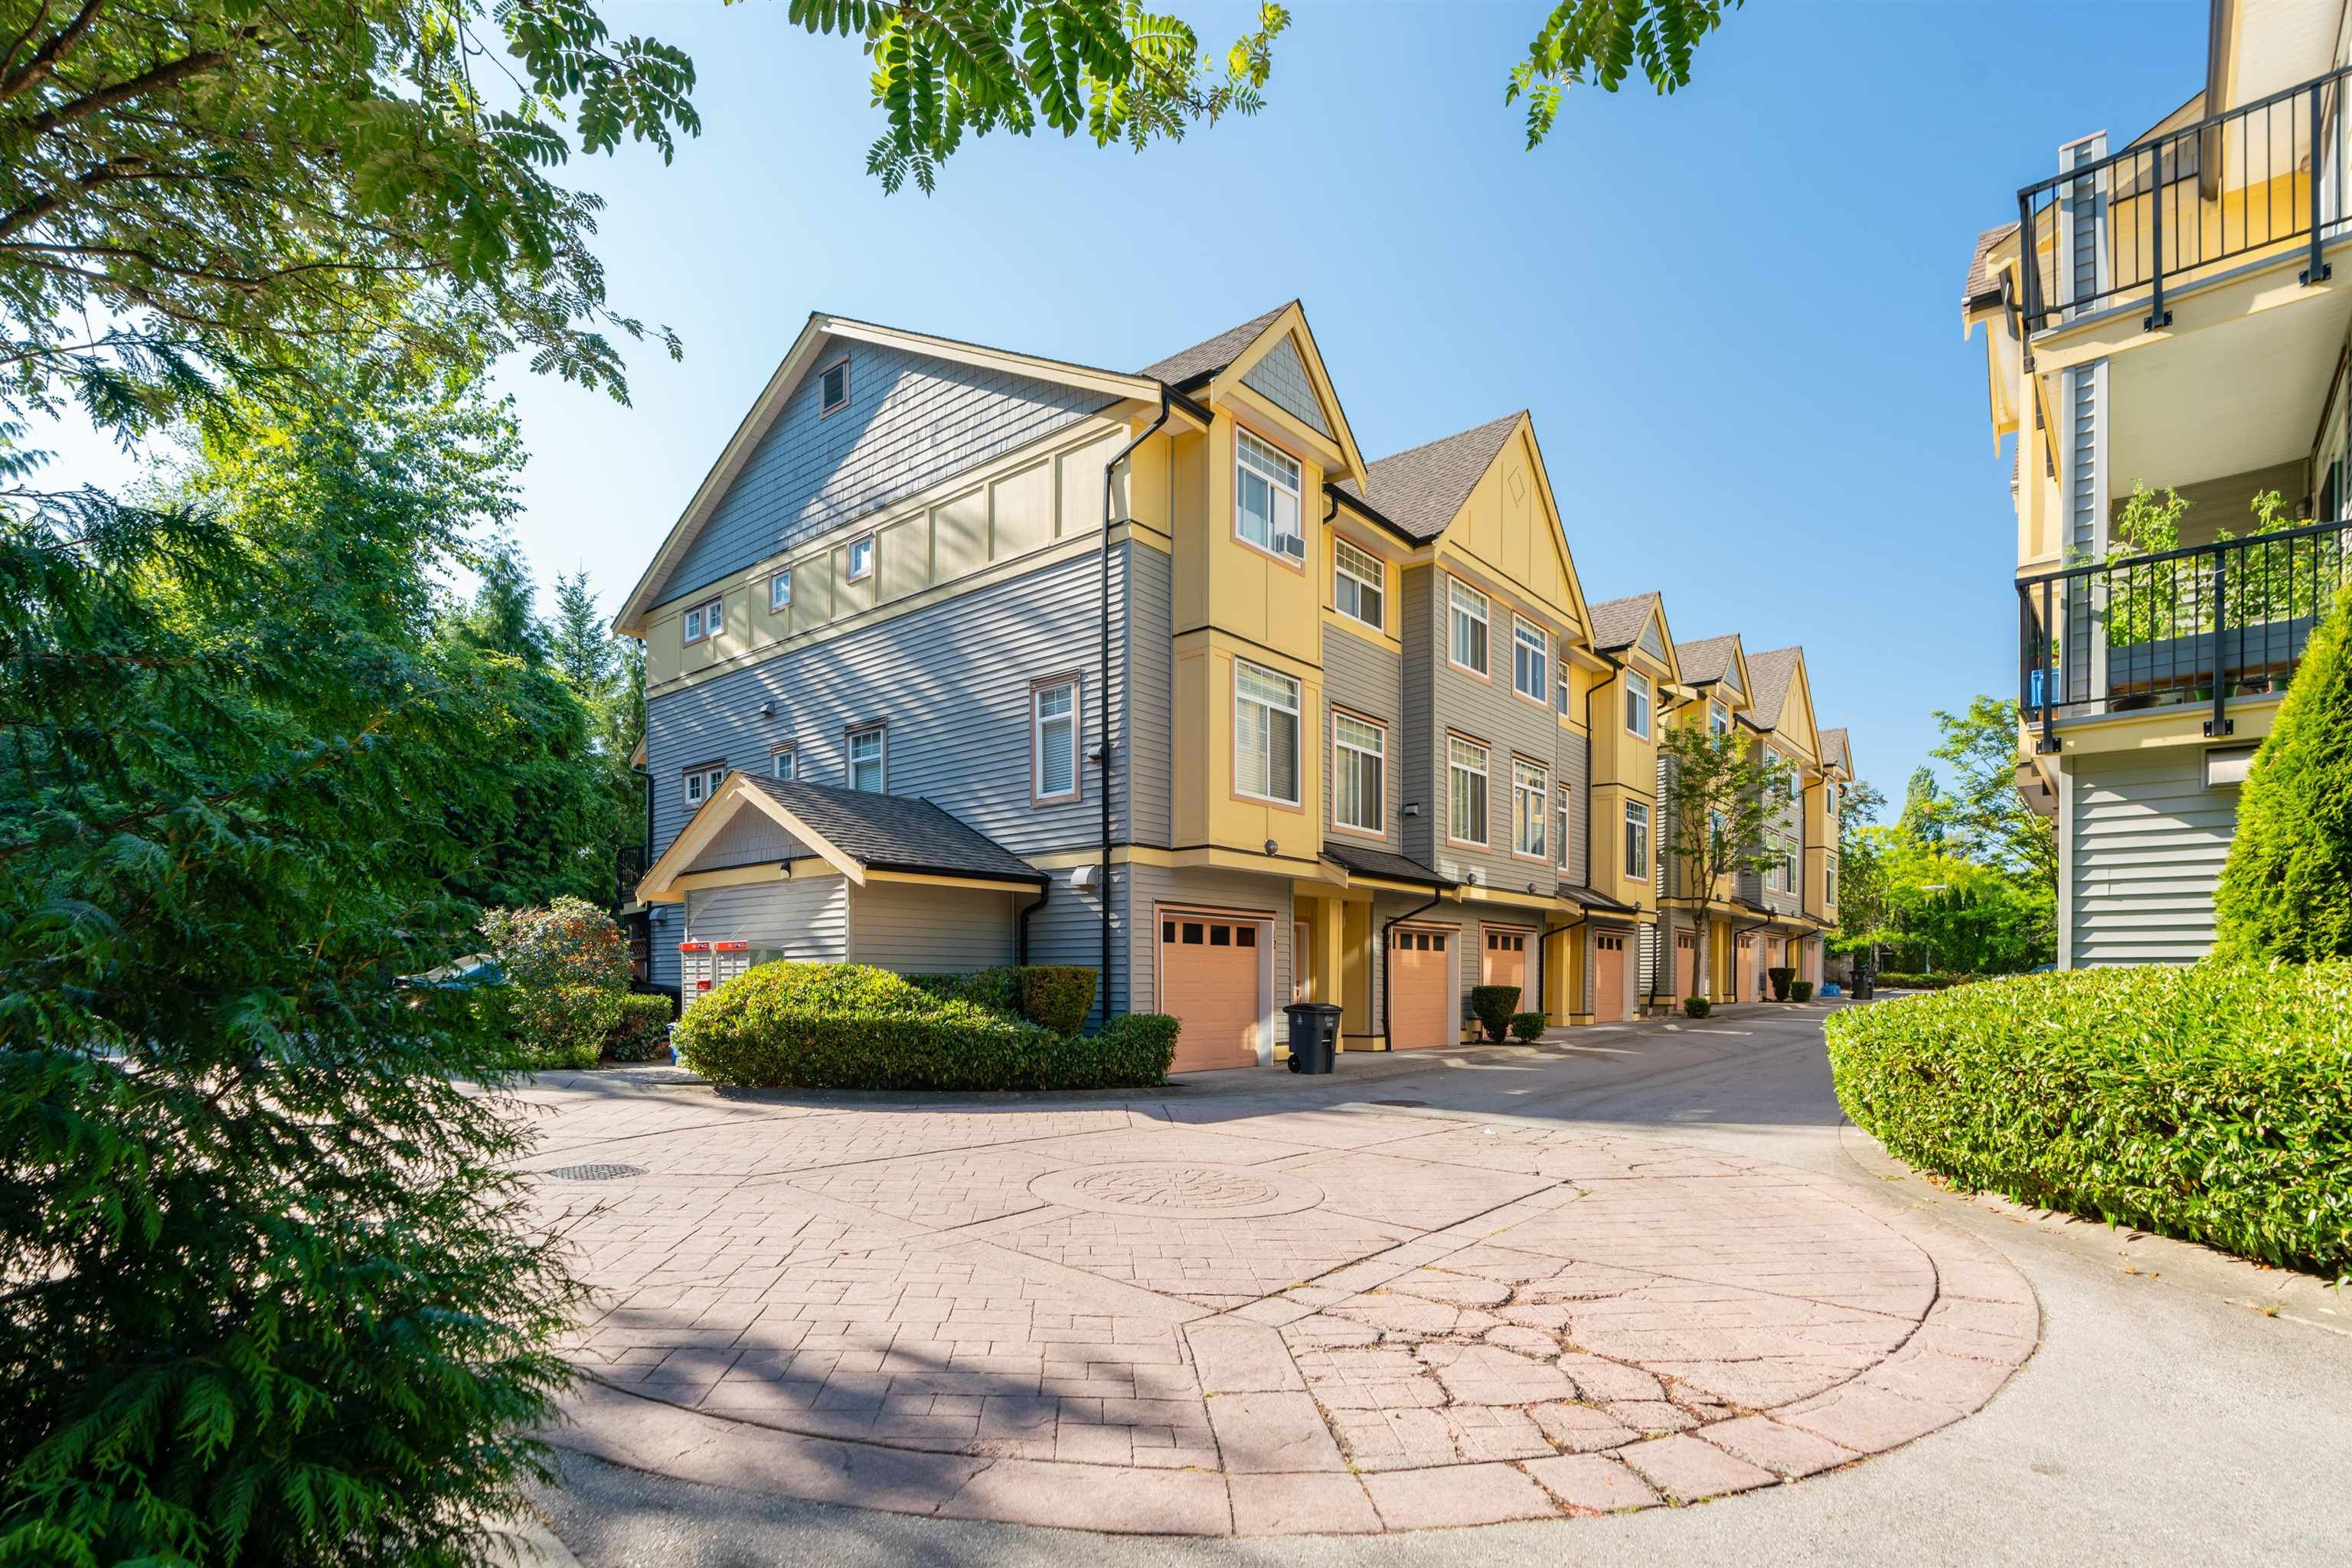 Main Photo: 16 15518 103A Avenue in Surrey: Guildford Townhouse for sale (North Surrey)  : MLS®# R2609524